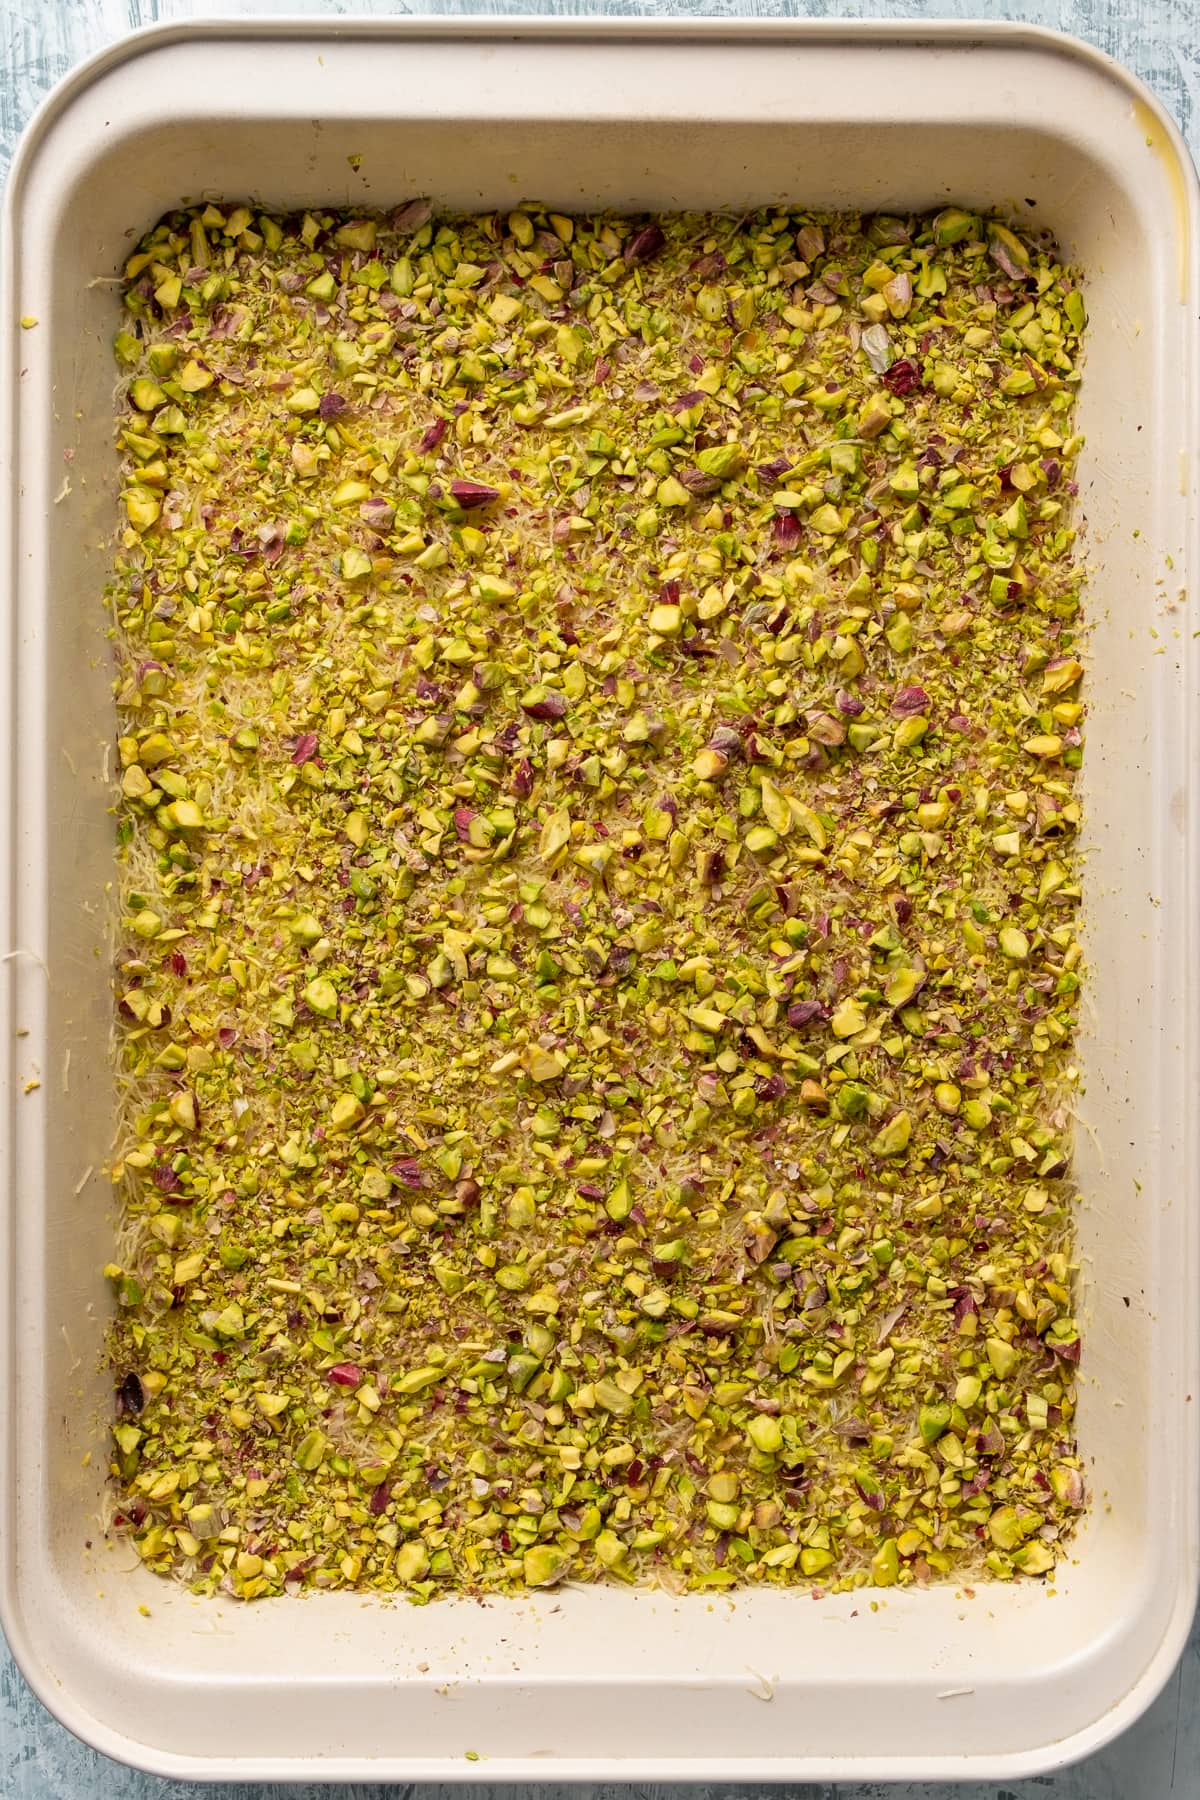 Shredded kadayif dough flattened and topped with a generous amount of crumbled pistachios.